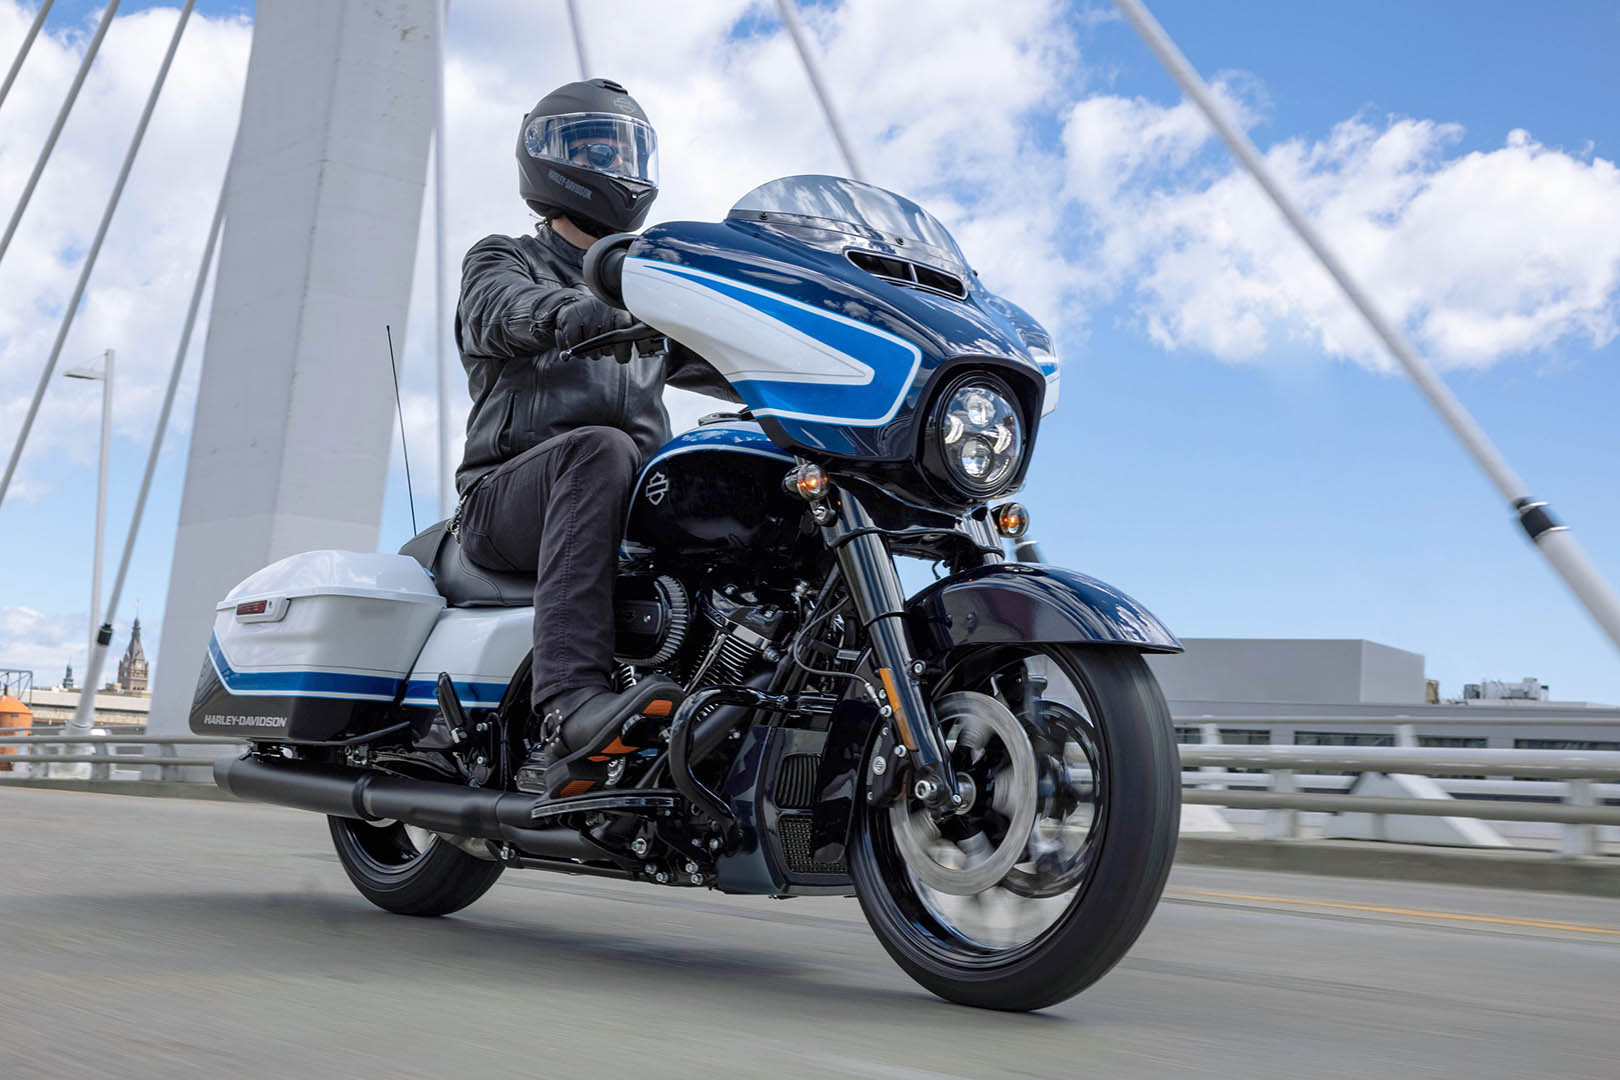 2021 Harley-Davidson Street Glide Special Arctic Blast Limited Edition First Look MSRP